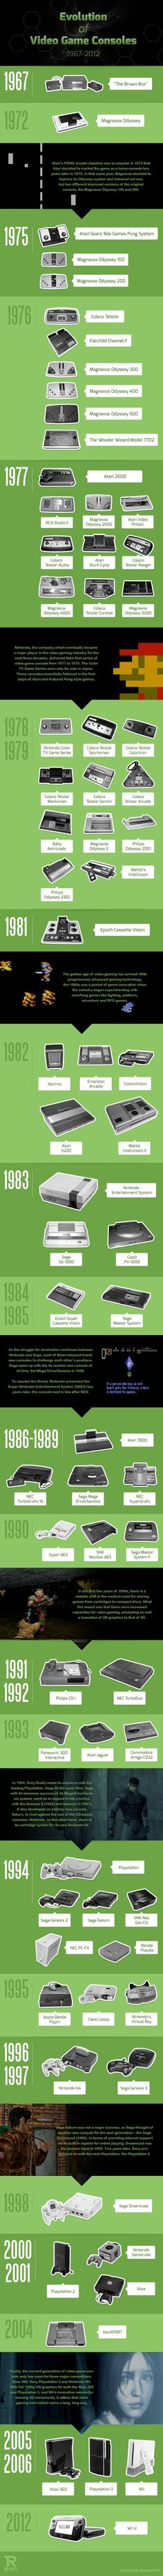 Evolution of the Video Game Console - AreImages #Infographic